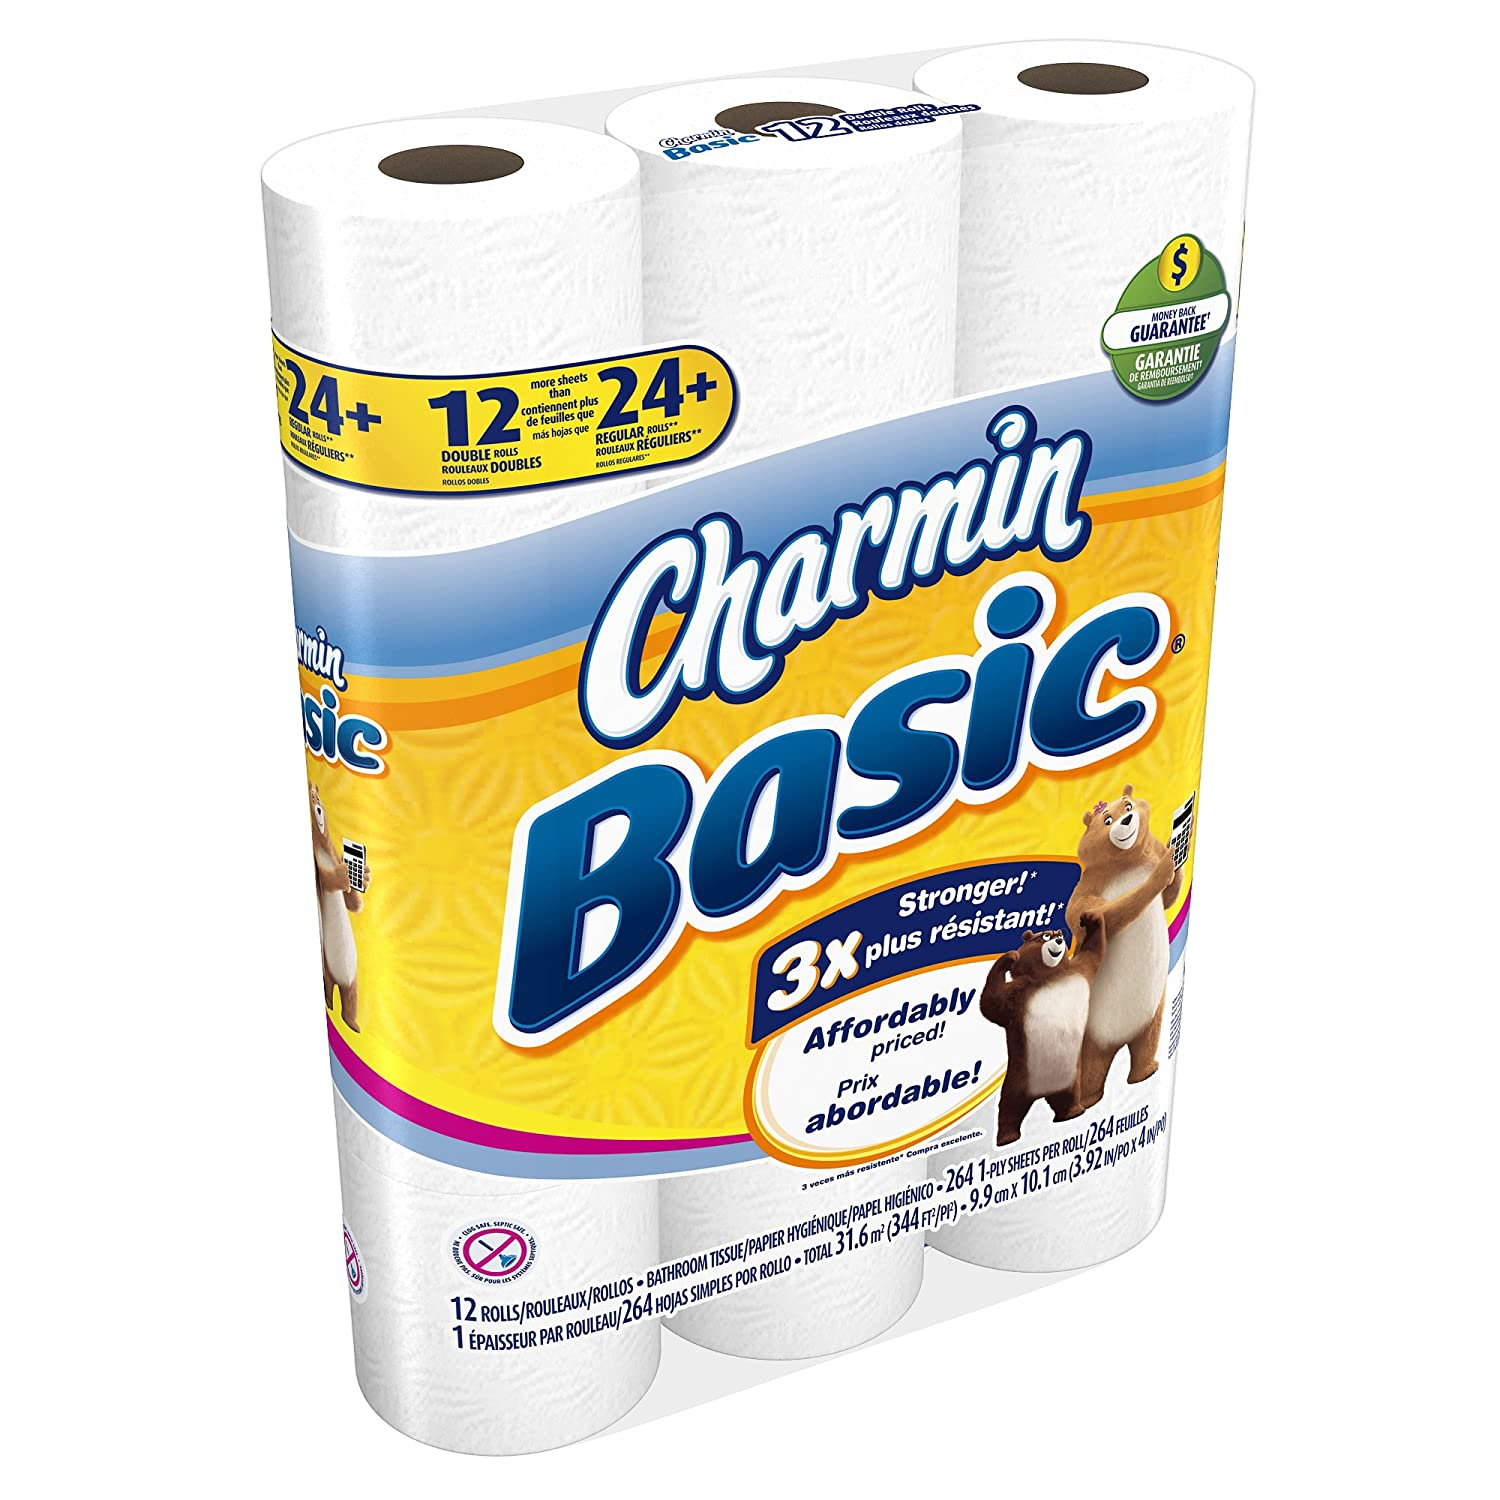 Amazon.com : Charmin Basic Toilet Paper - Double Roll - 12 pk : Bathroom Tissue : Grocery & Gourmet Food